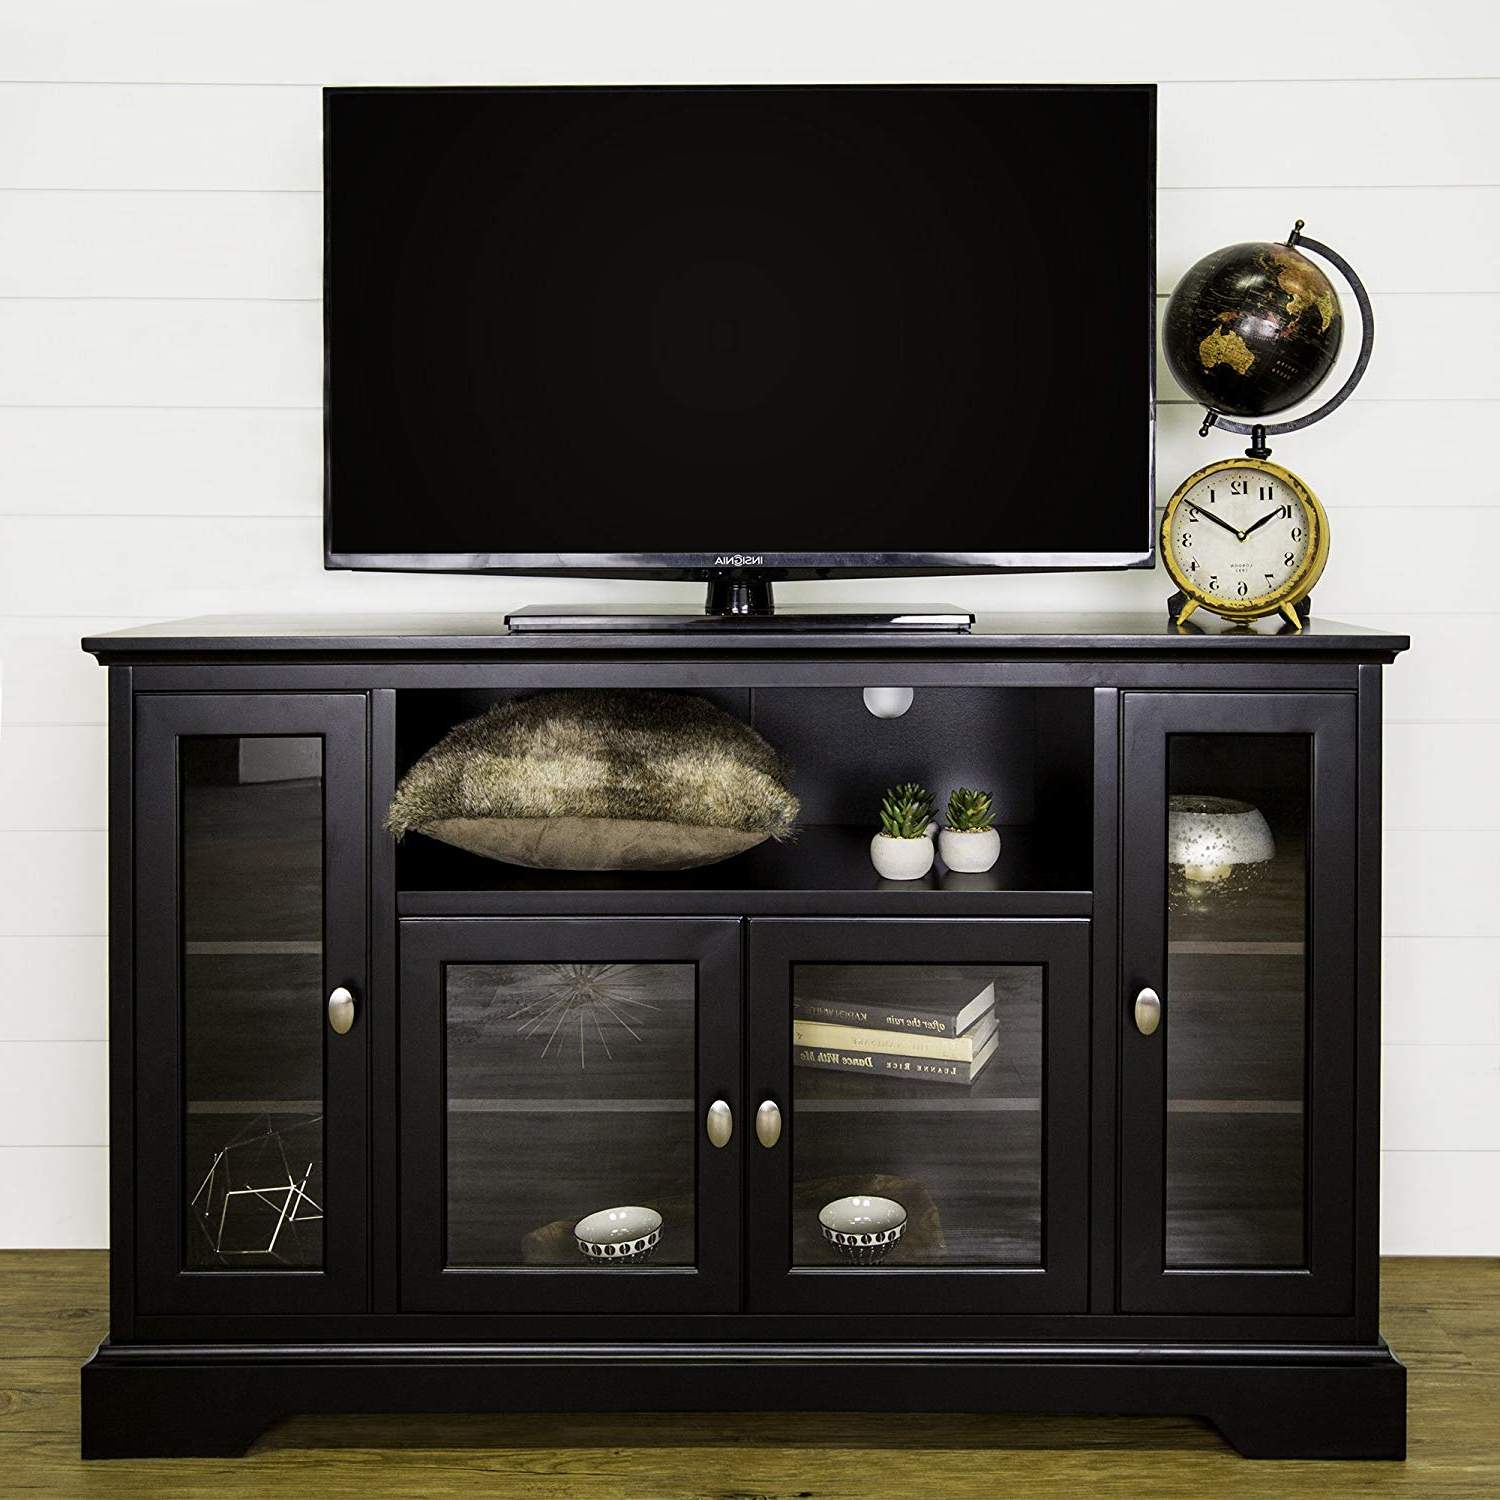 "Amazon: We Furniture 52"" Wood Highboy Style Tall Tv Stand Pertaining To Preferred Grey Wood Tv Stands (View 17 of 20)"